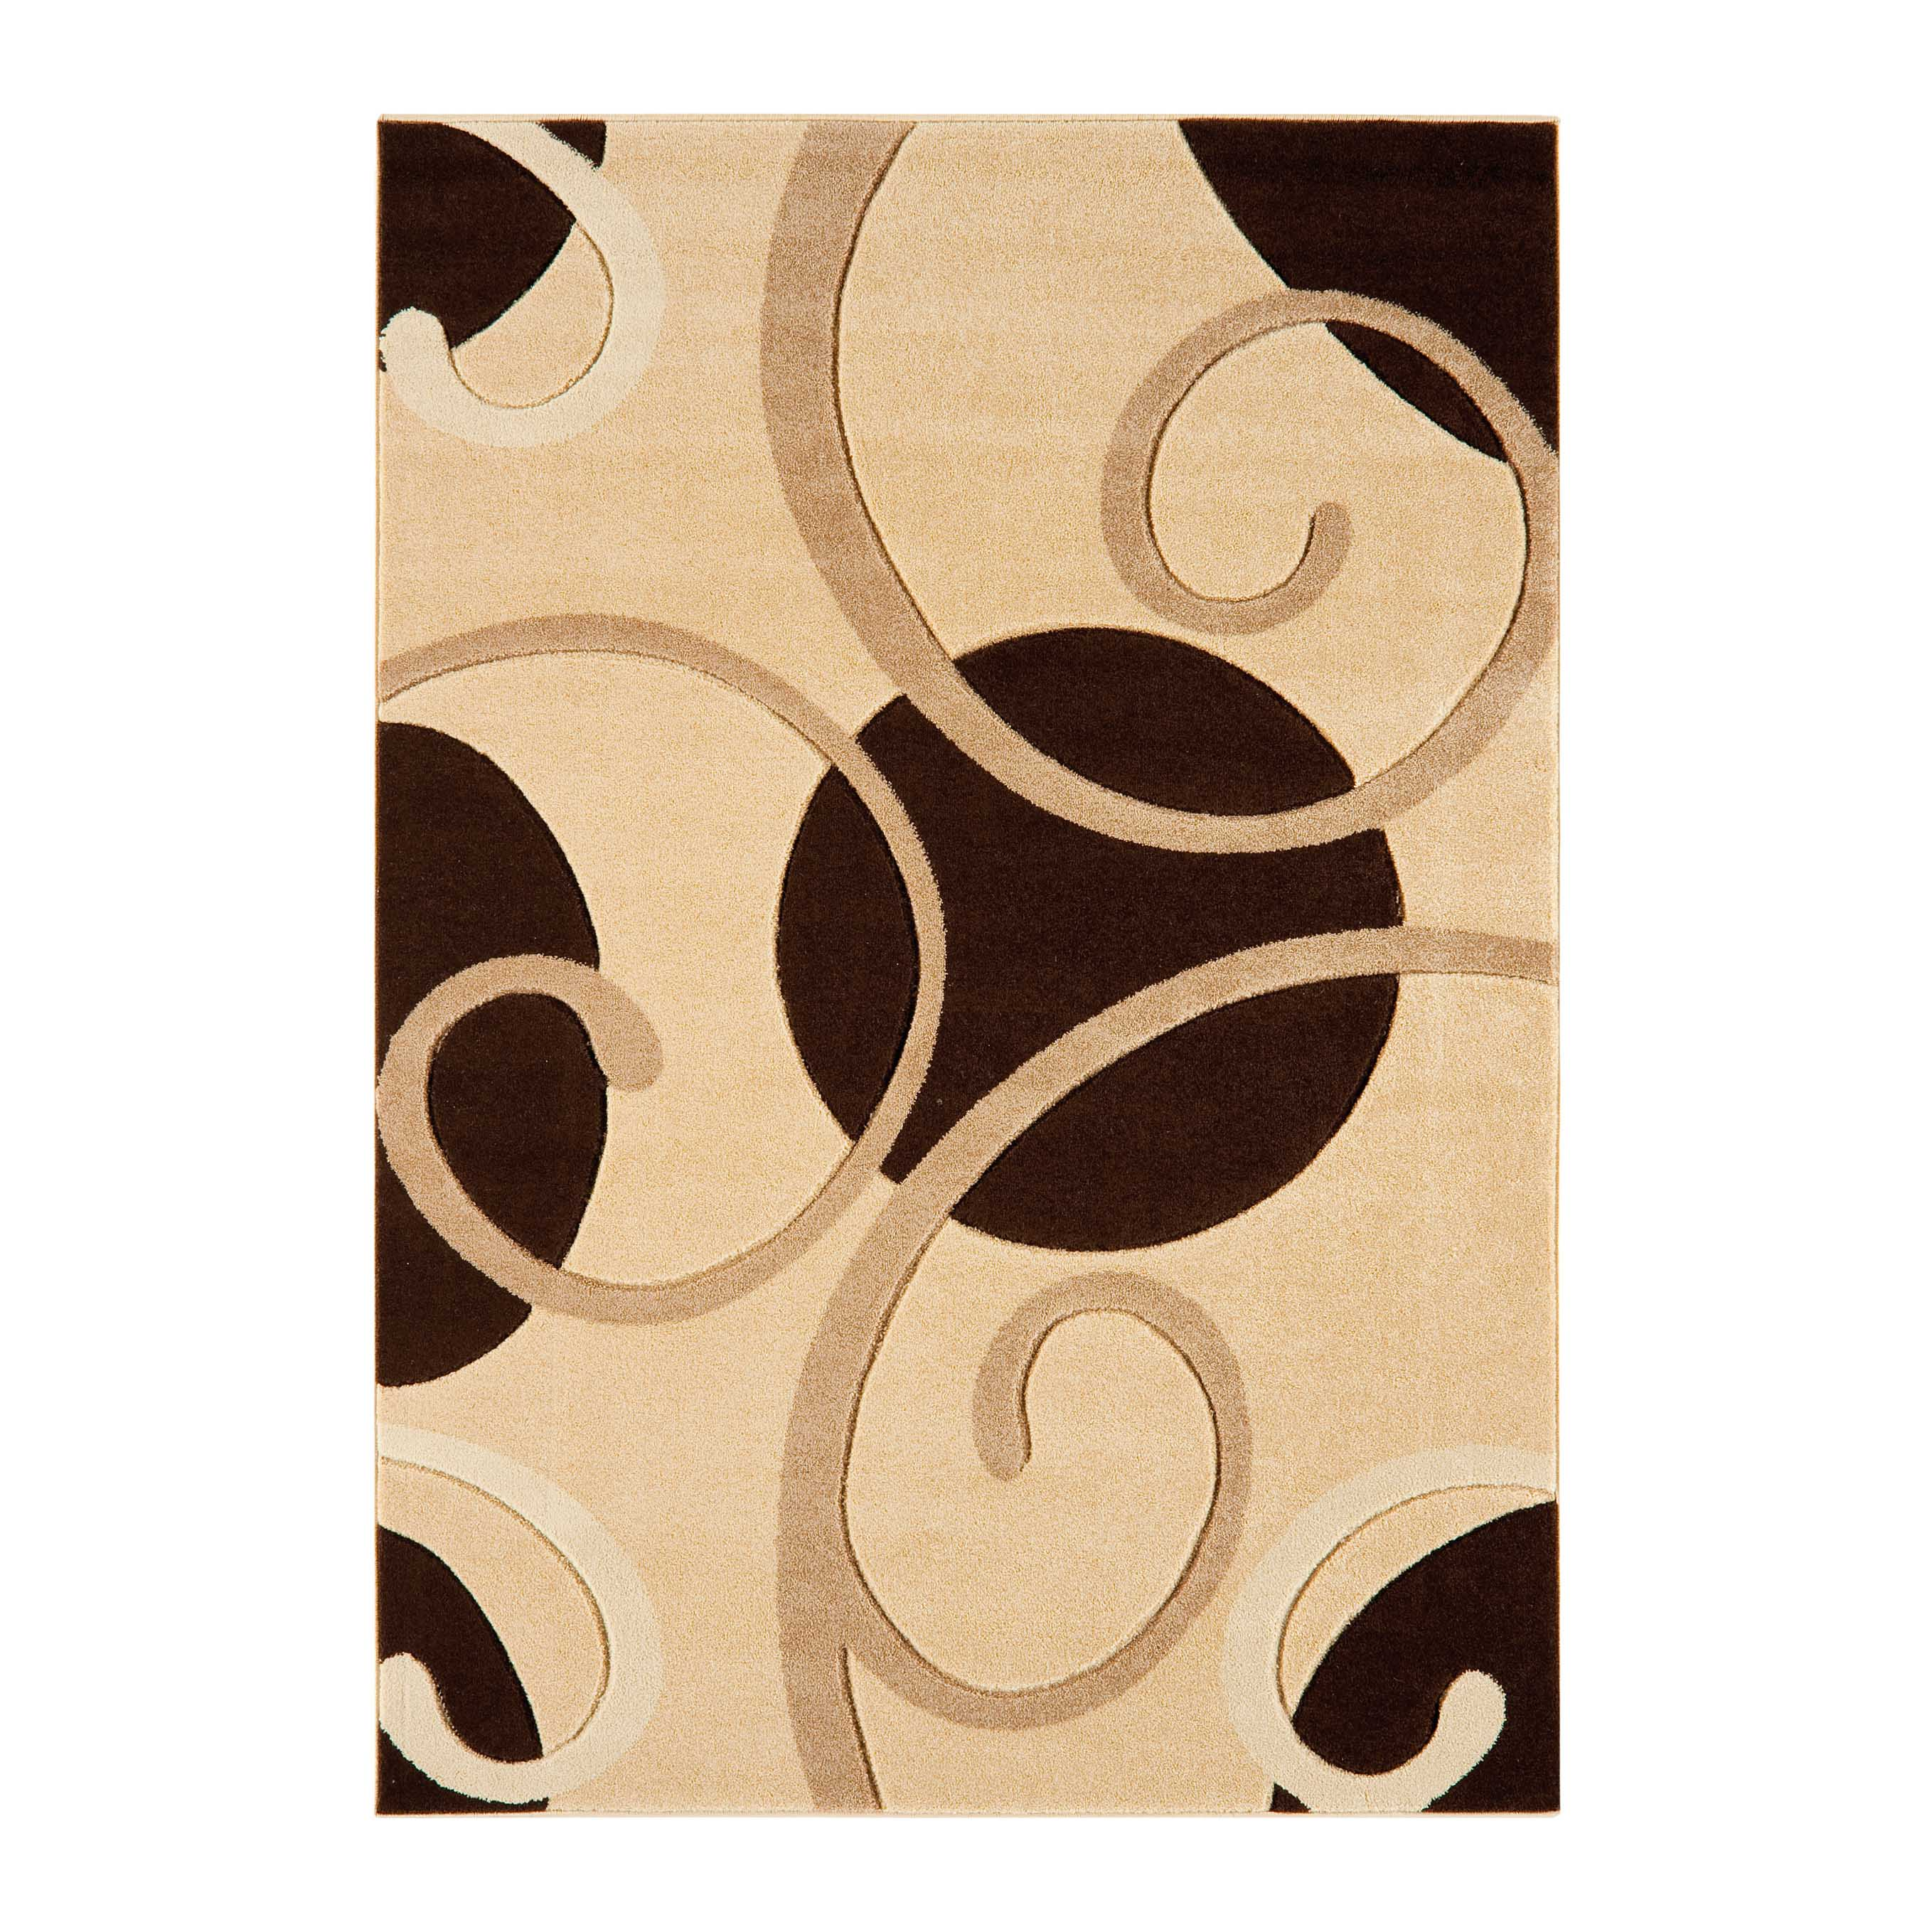 Couture Rugs COU05 in Beige and Brown